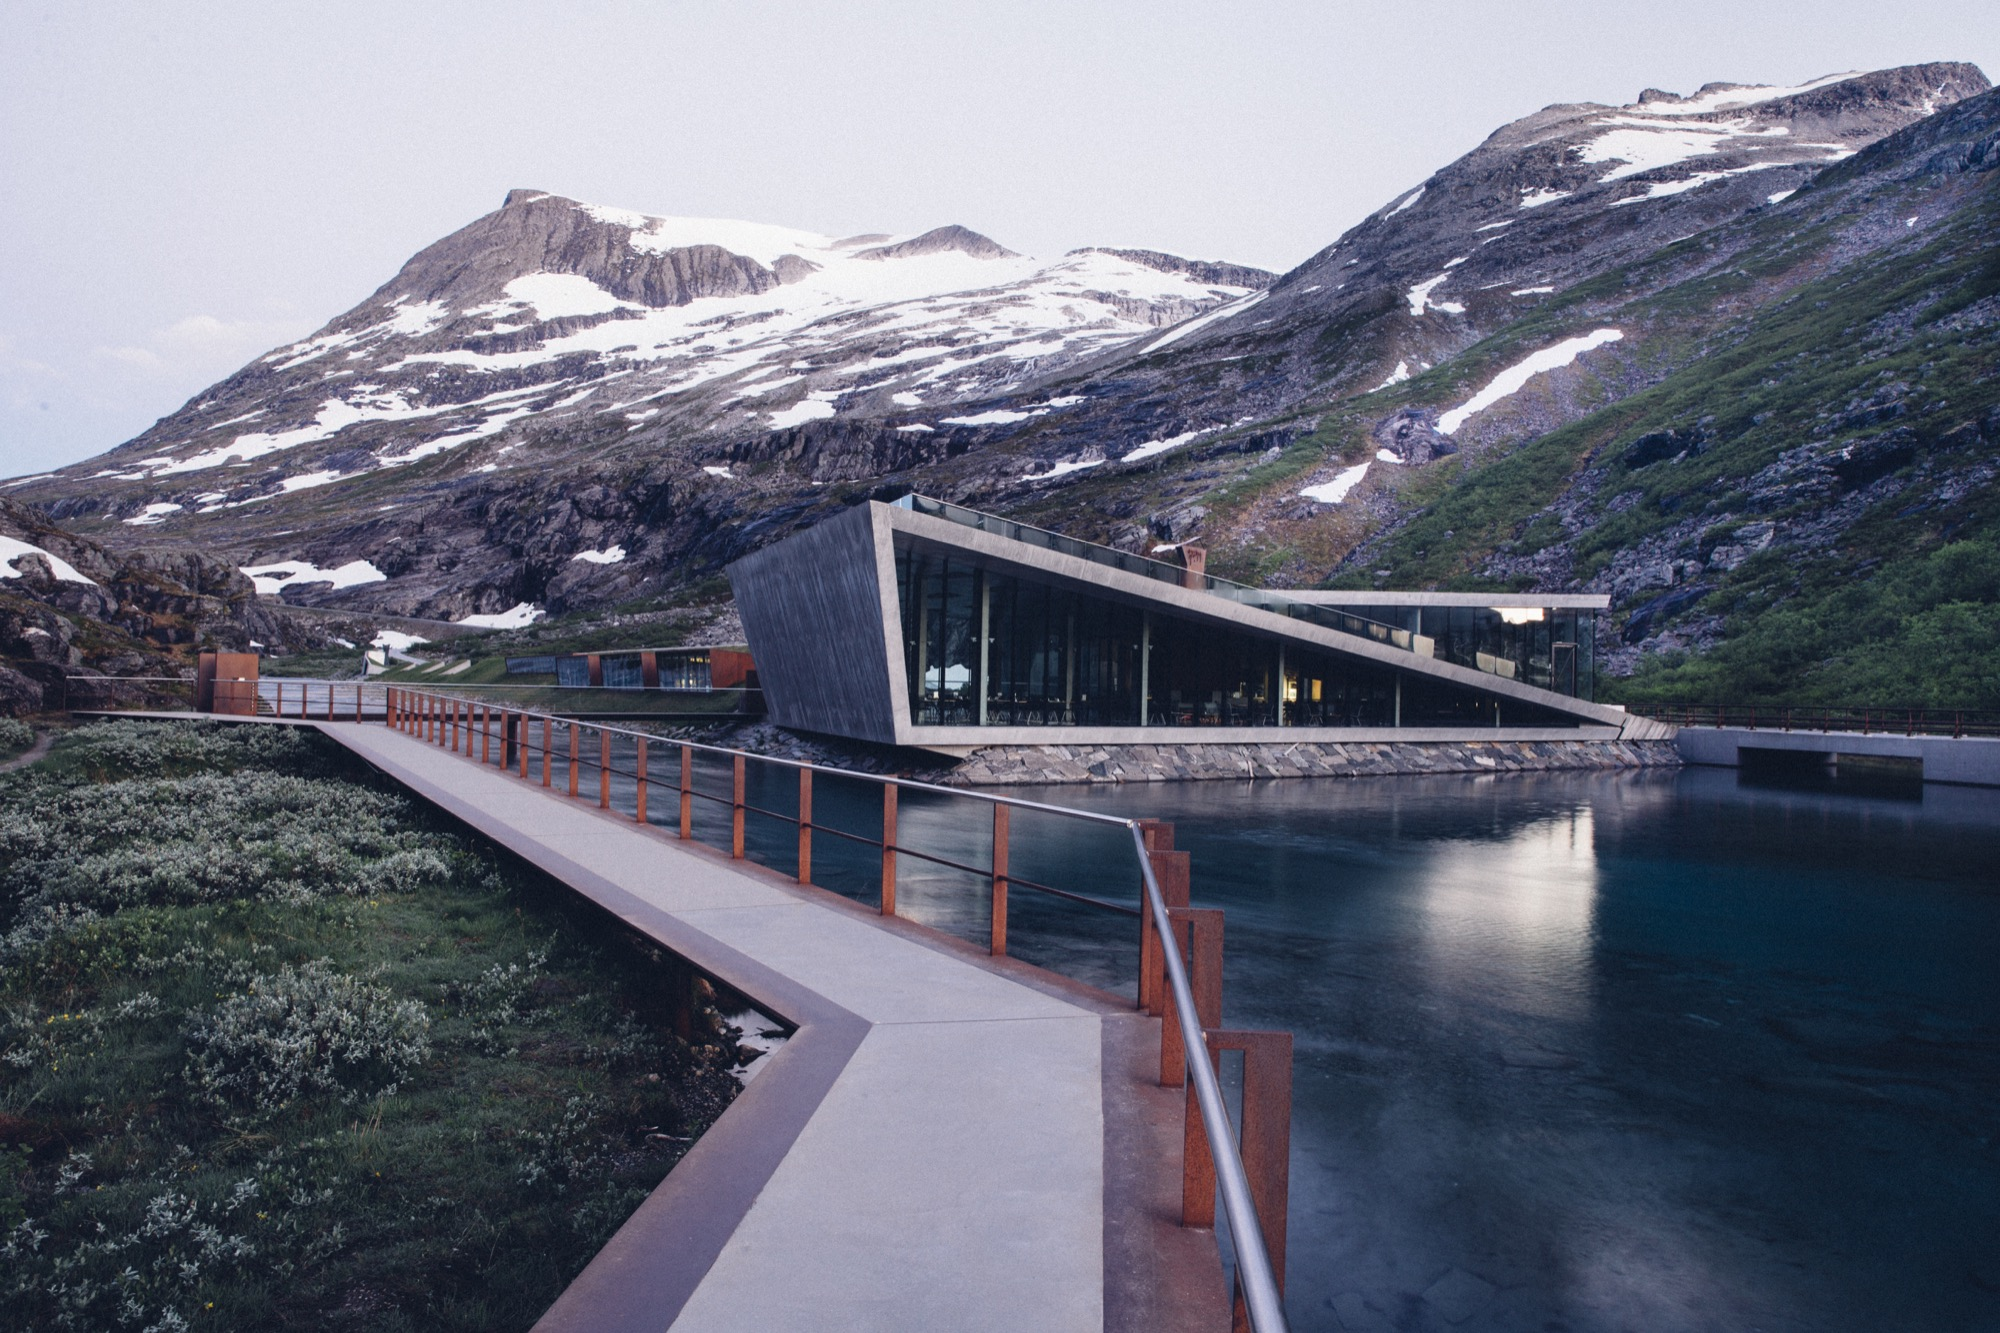 Trollstigen Road Visitor Center by Reiulf Ramstad Architekter / Photo by Lars Schneider